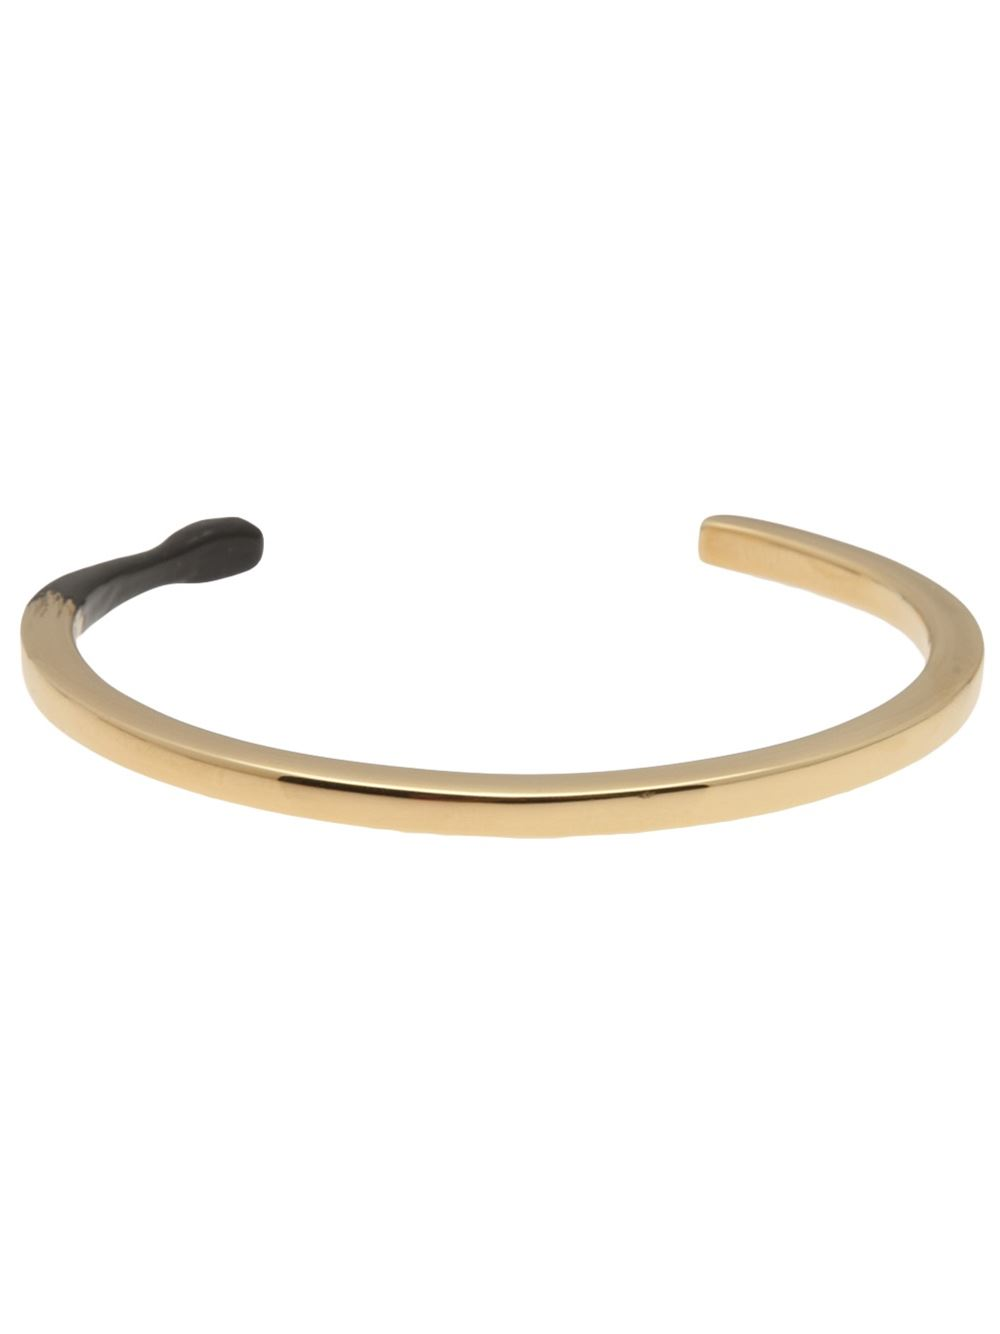 Stella Mccartney Match Cuff -  - Farfetch.com